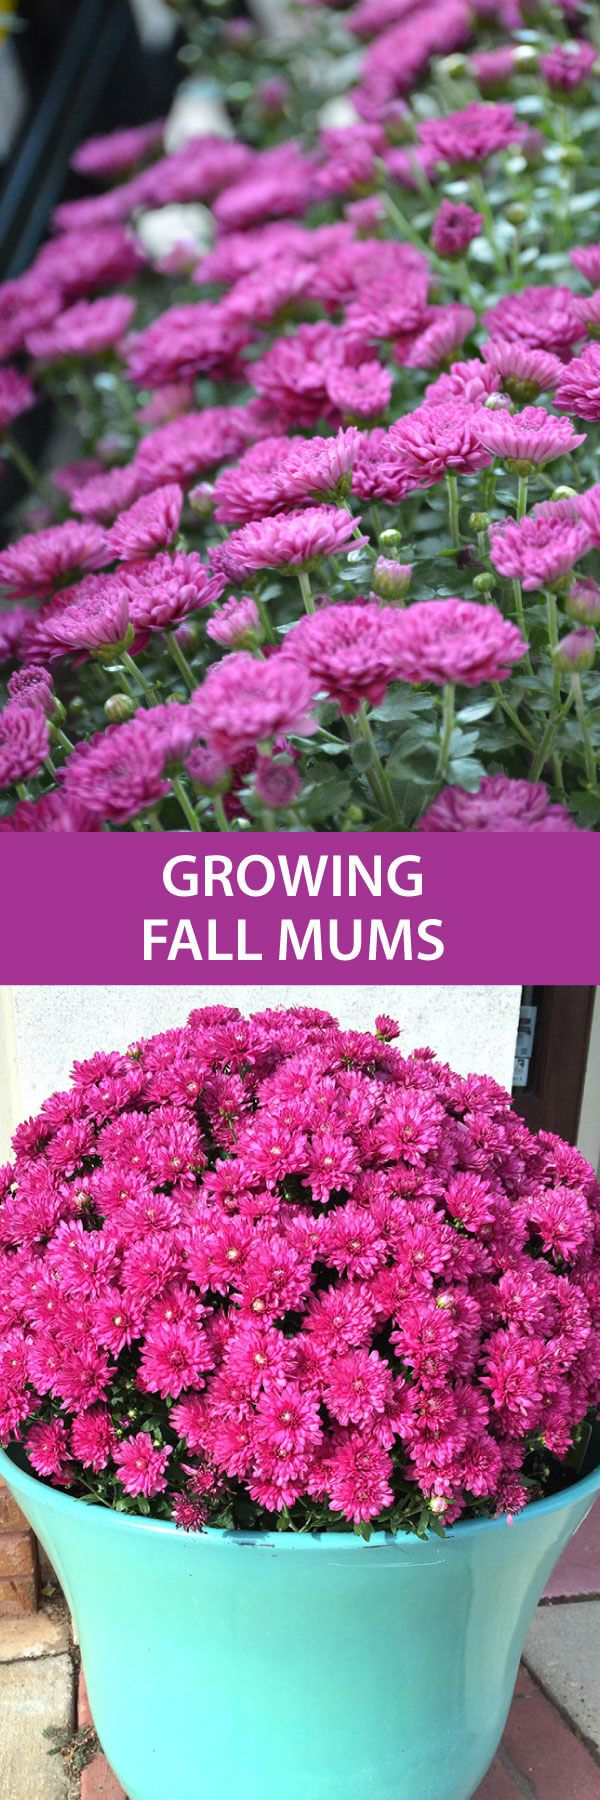 How To Get The Best Color From Your Fall Mums